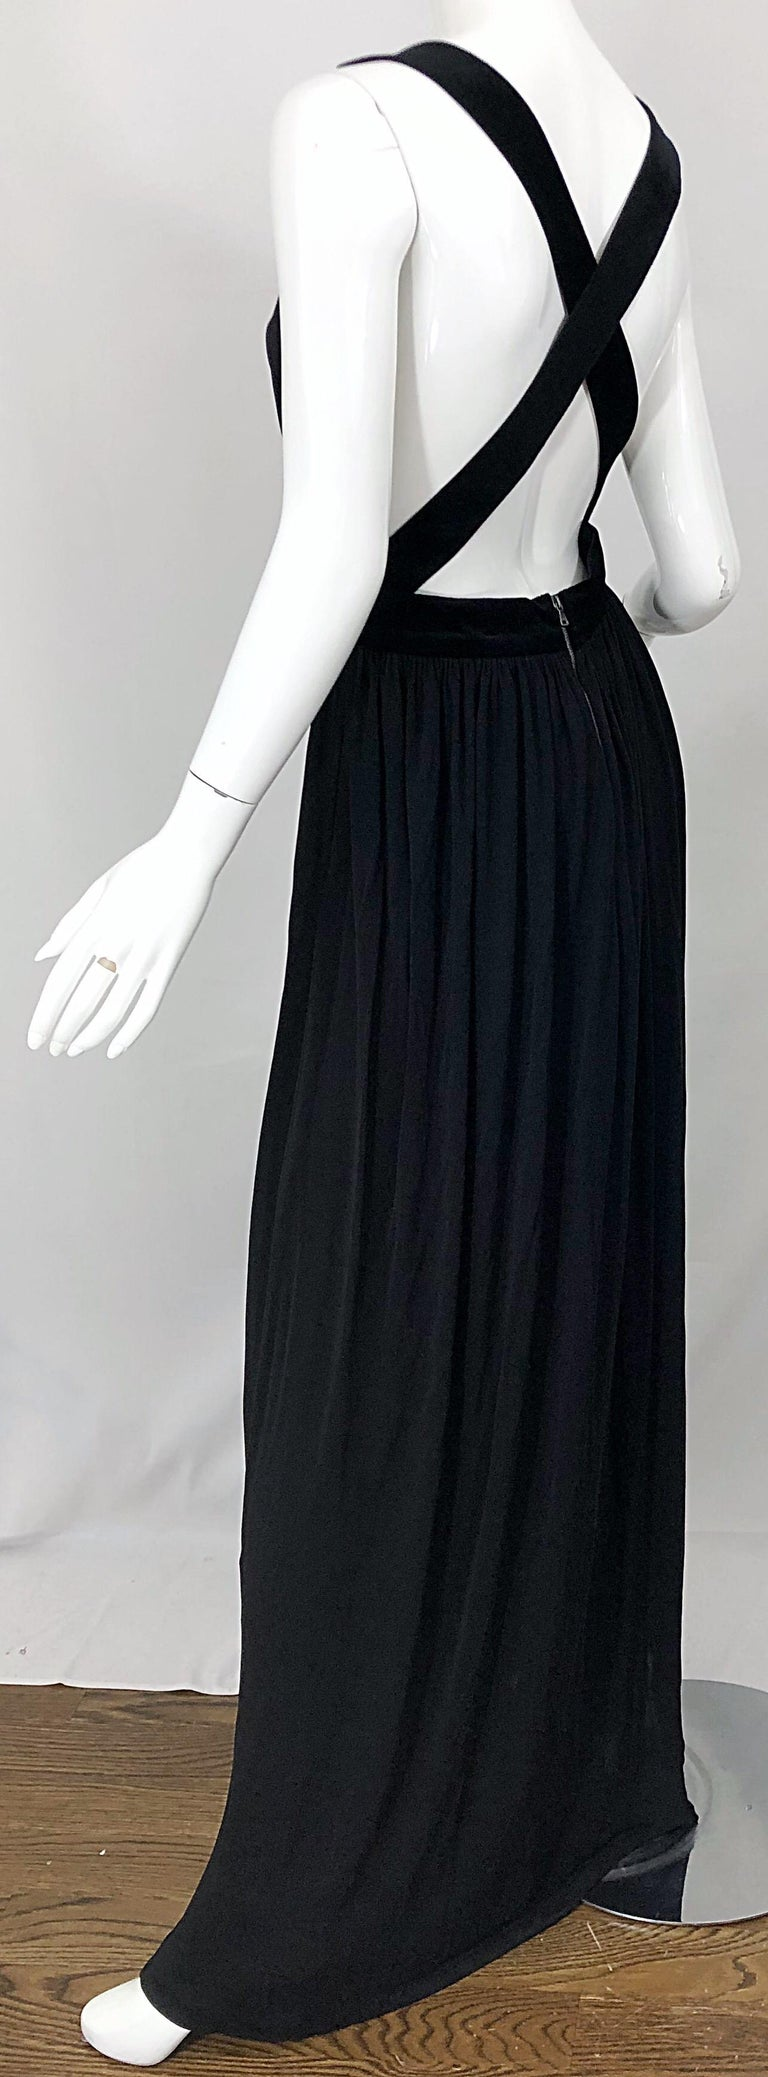 1990s Dolce & Gabbana D&G Black Plunging Sexy Beaded Sleeveless Vintage 90s Gown For Sale 5